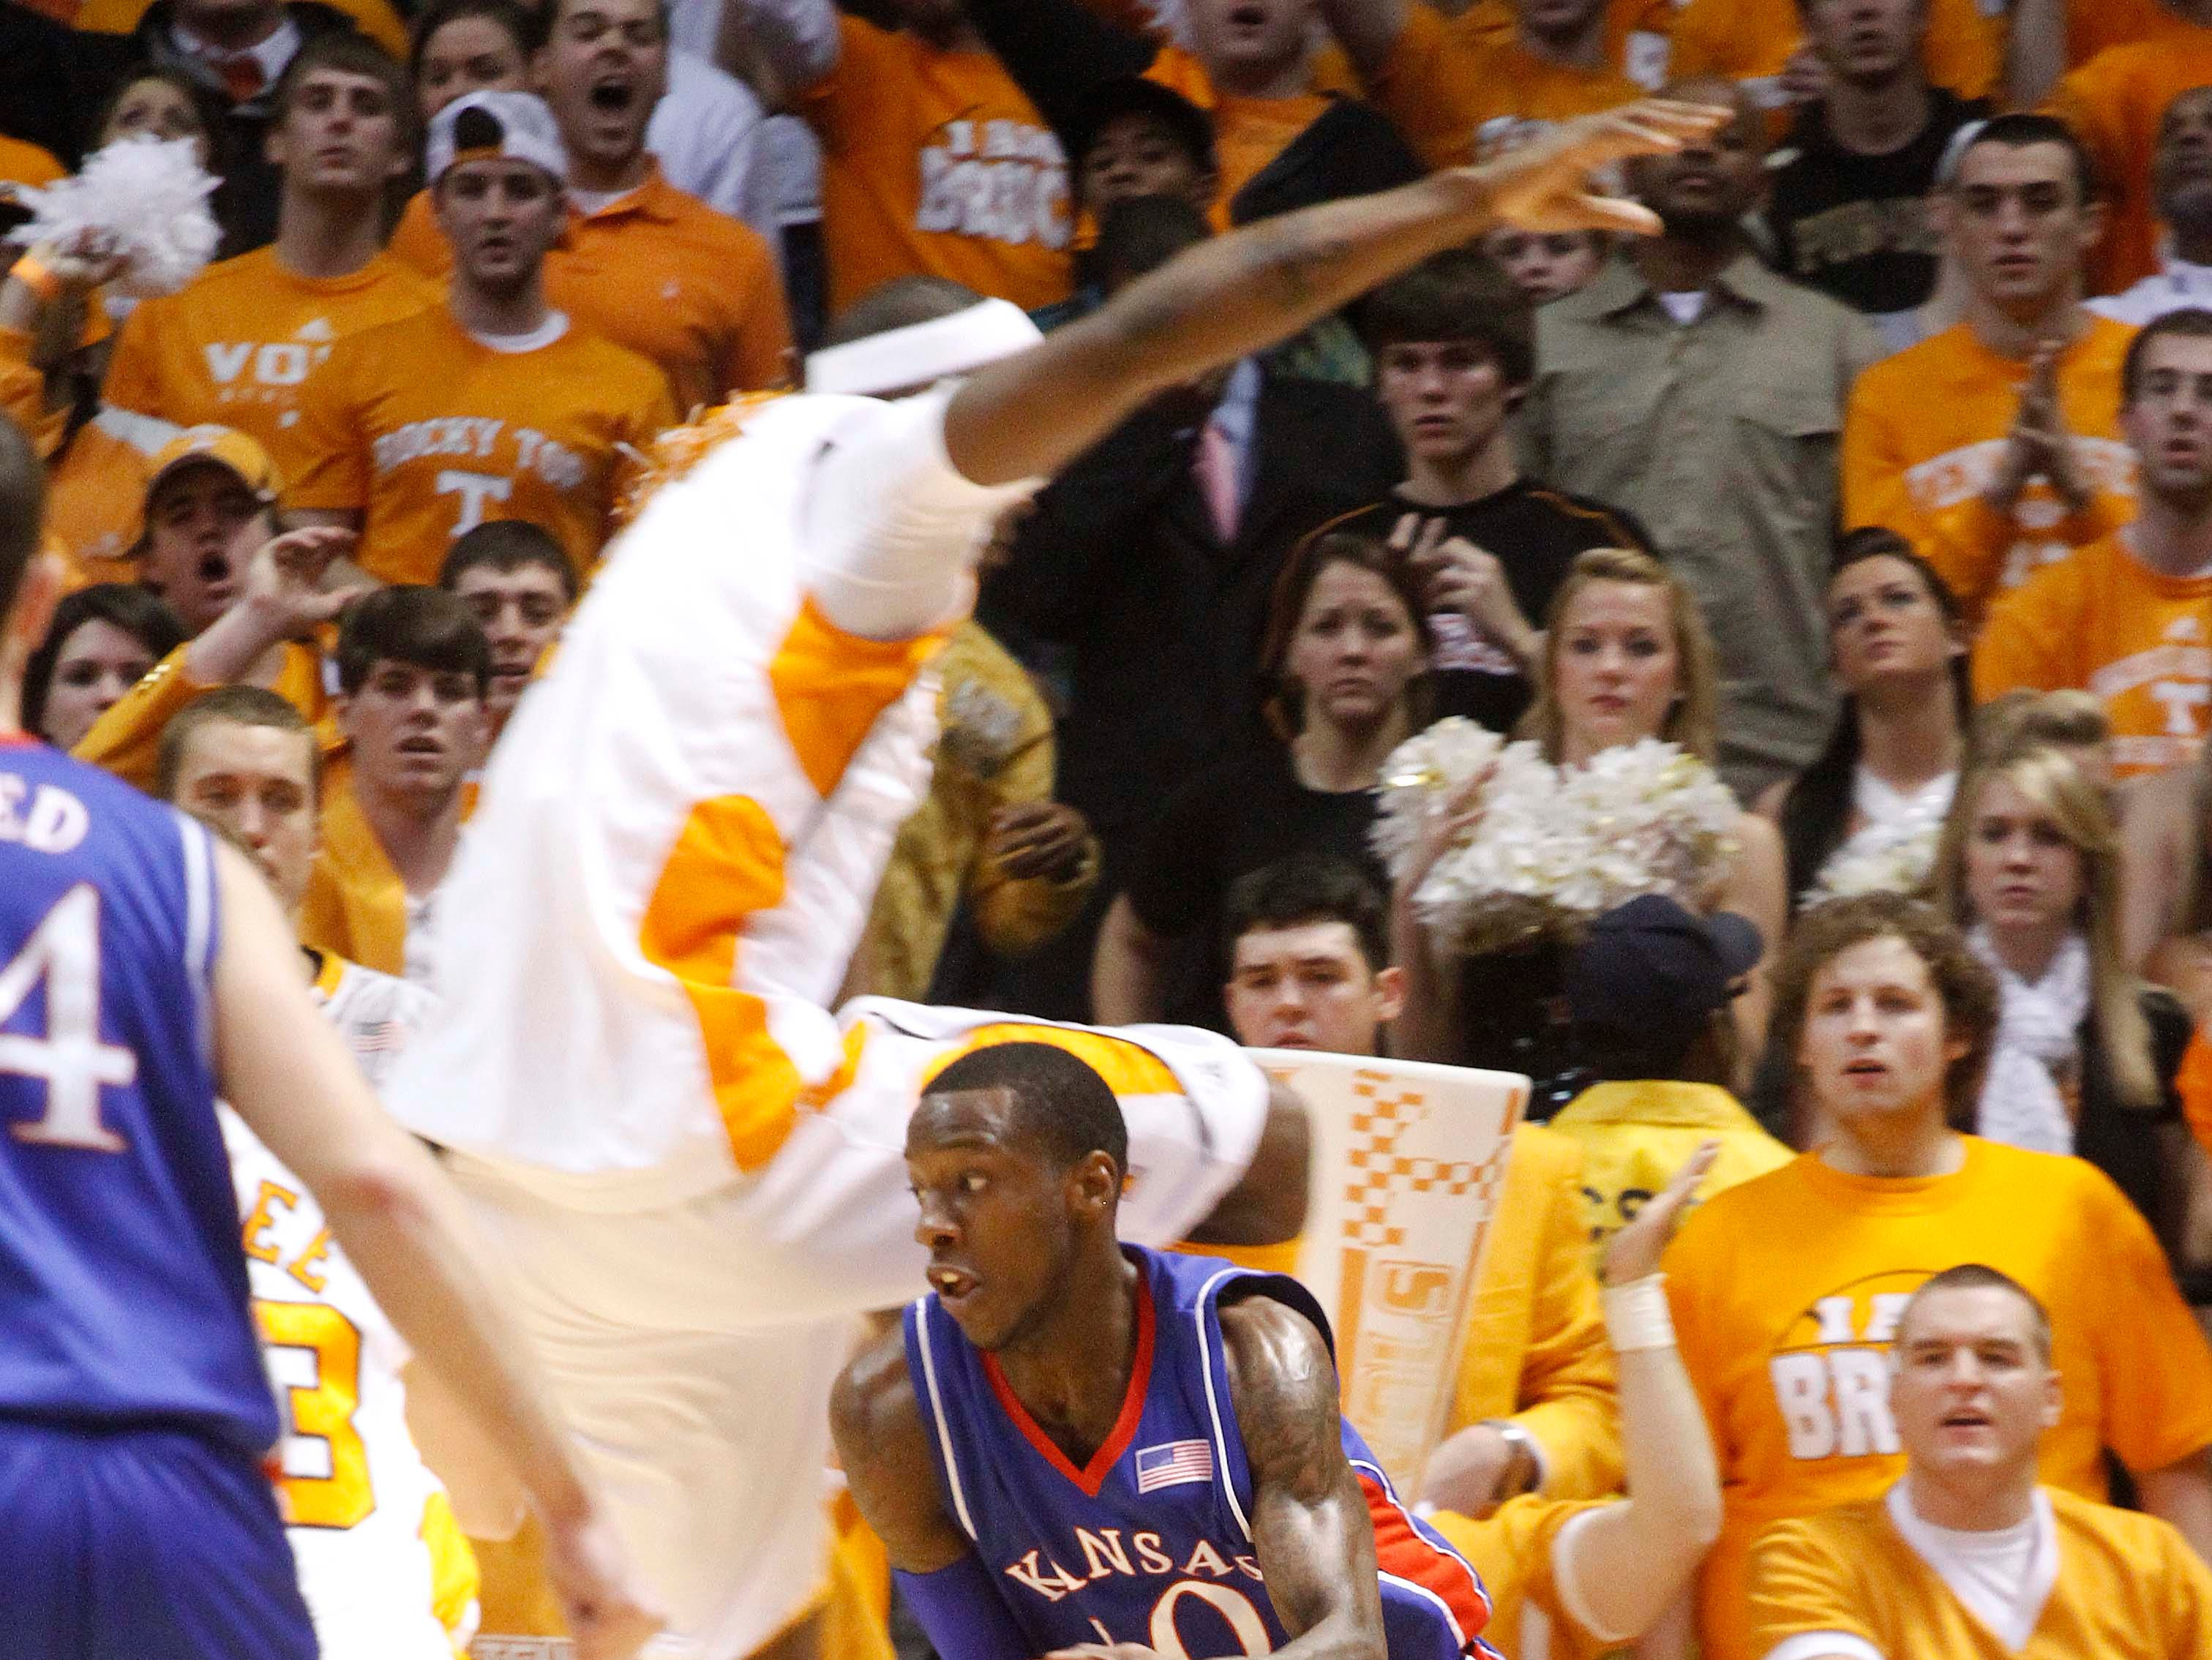 Kansas' Tyshawn Taylor (10) drives to the basket against a Tennessee player during the first half of an NCAA college basketball game Sunday, Jan. 10, 2010 in Knoxville, Tenn.